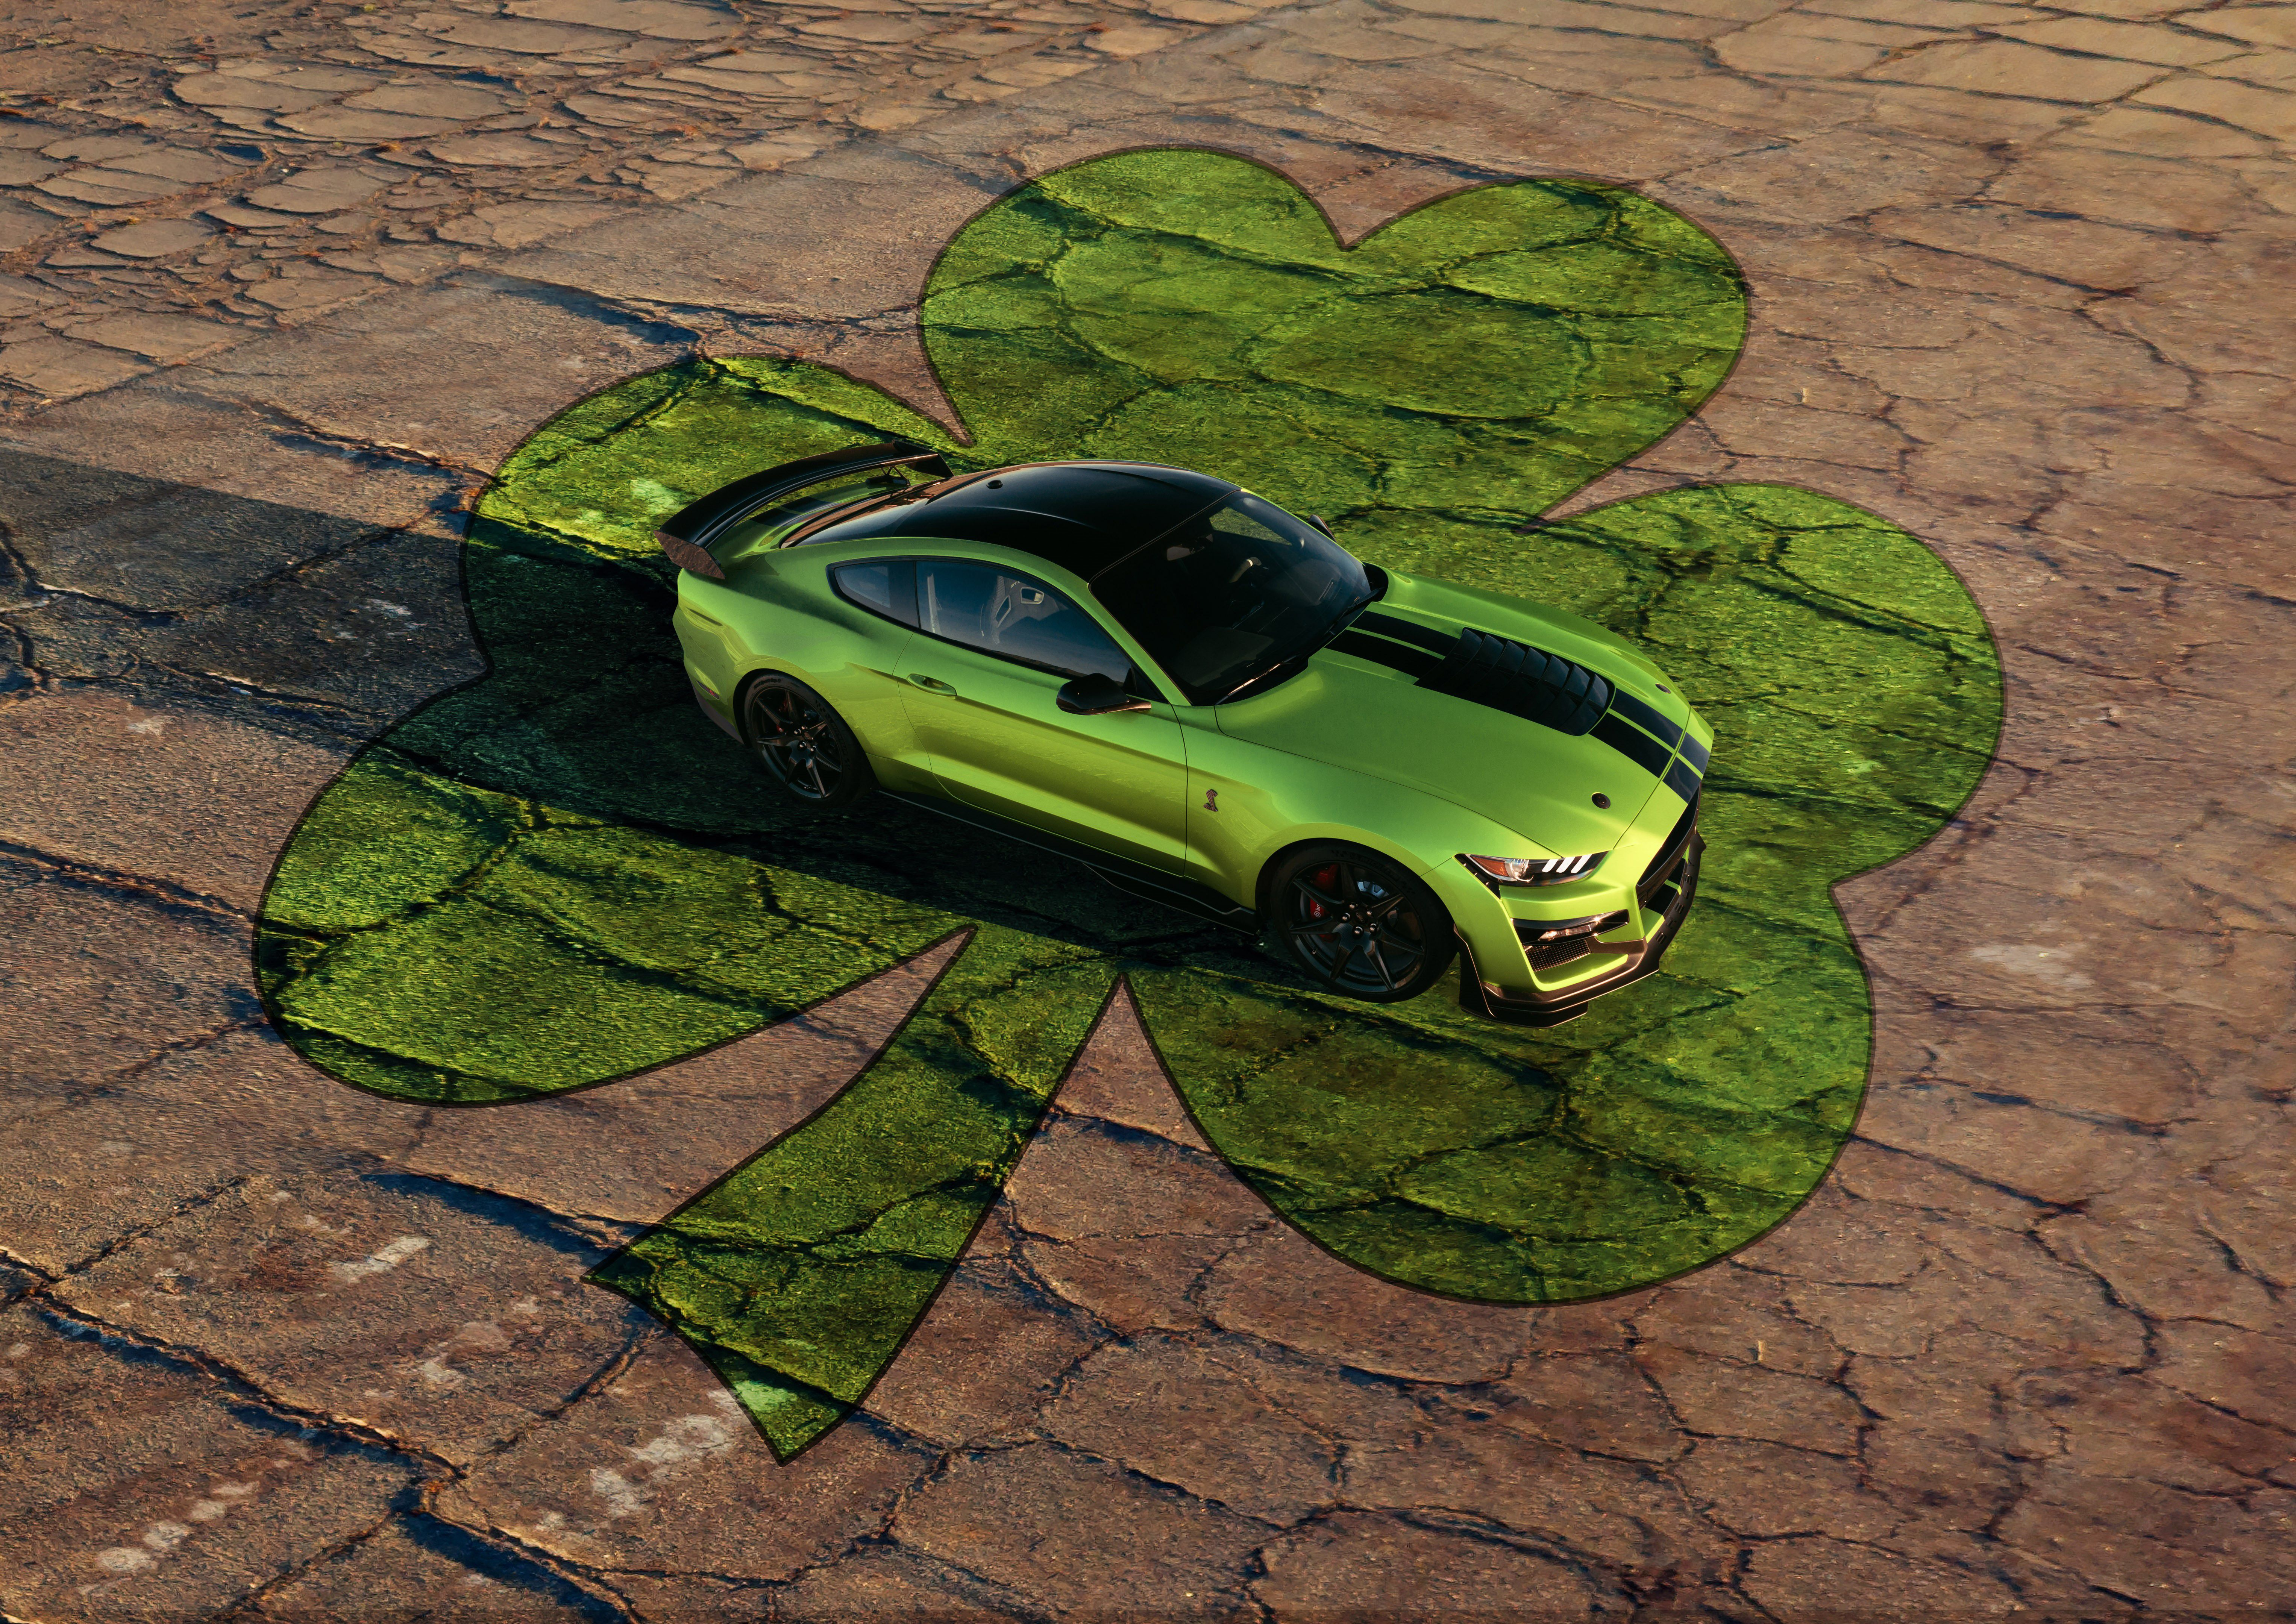 Ford Shelby Gt500 In Grabber Lime Has Saint Patrick S Day Spirit And Then Some Ford Mustang Shelby Gt500 Ford Mustang Shelby Mustang Shelby